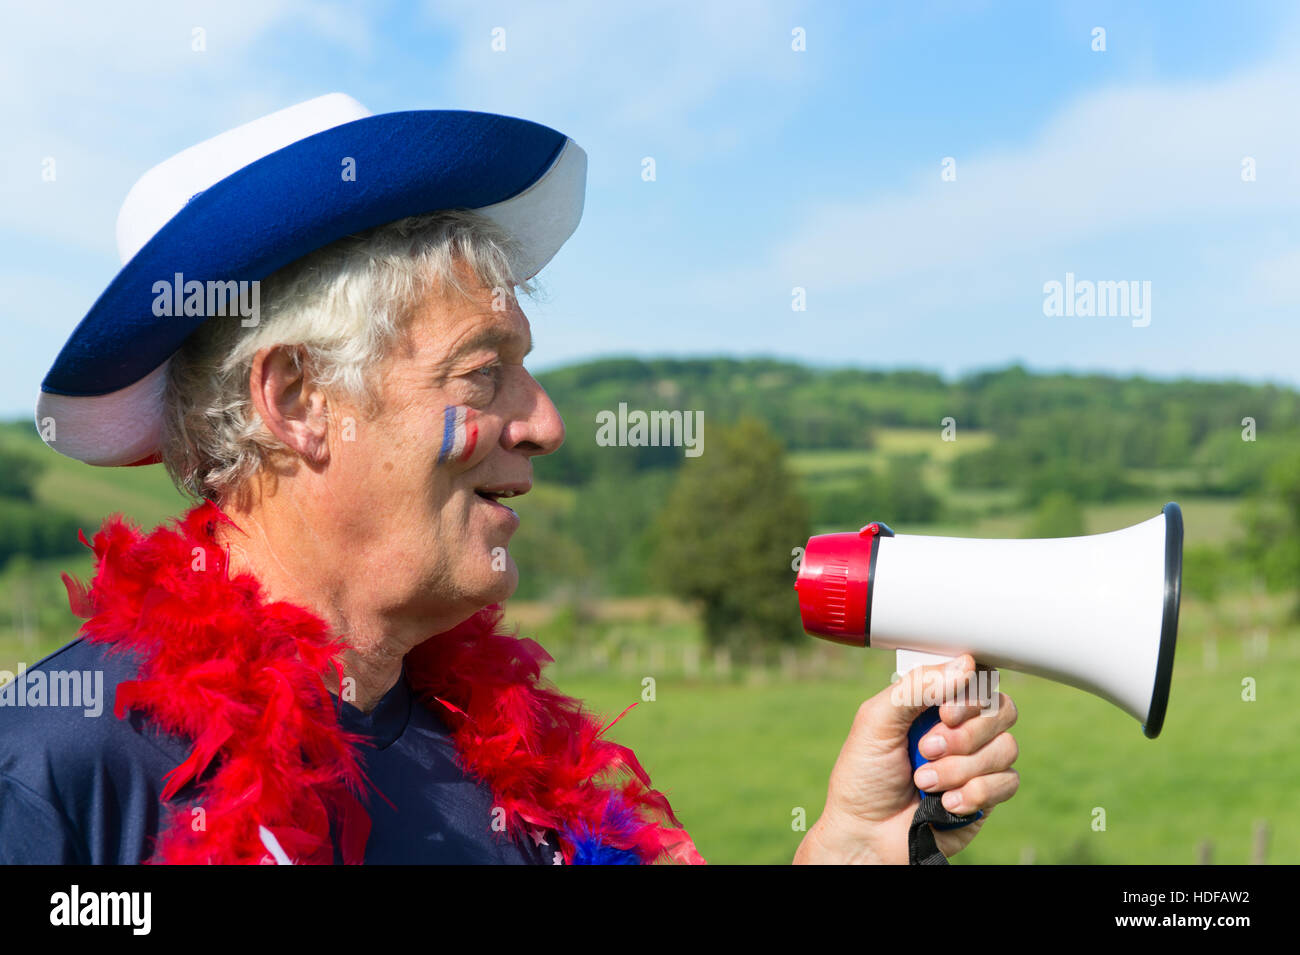 04e6e82cc39 French soccer fan from les bleus in France with megaphone Stock ...